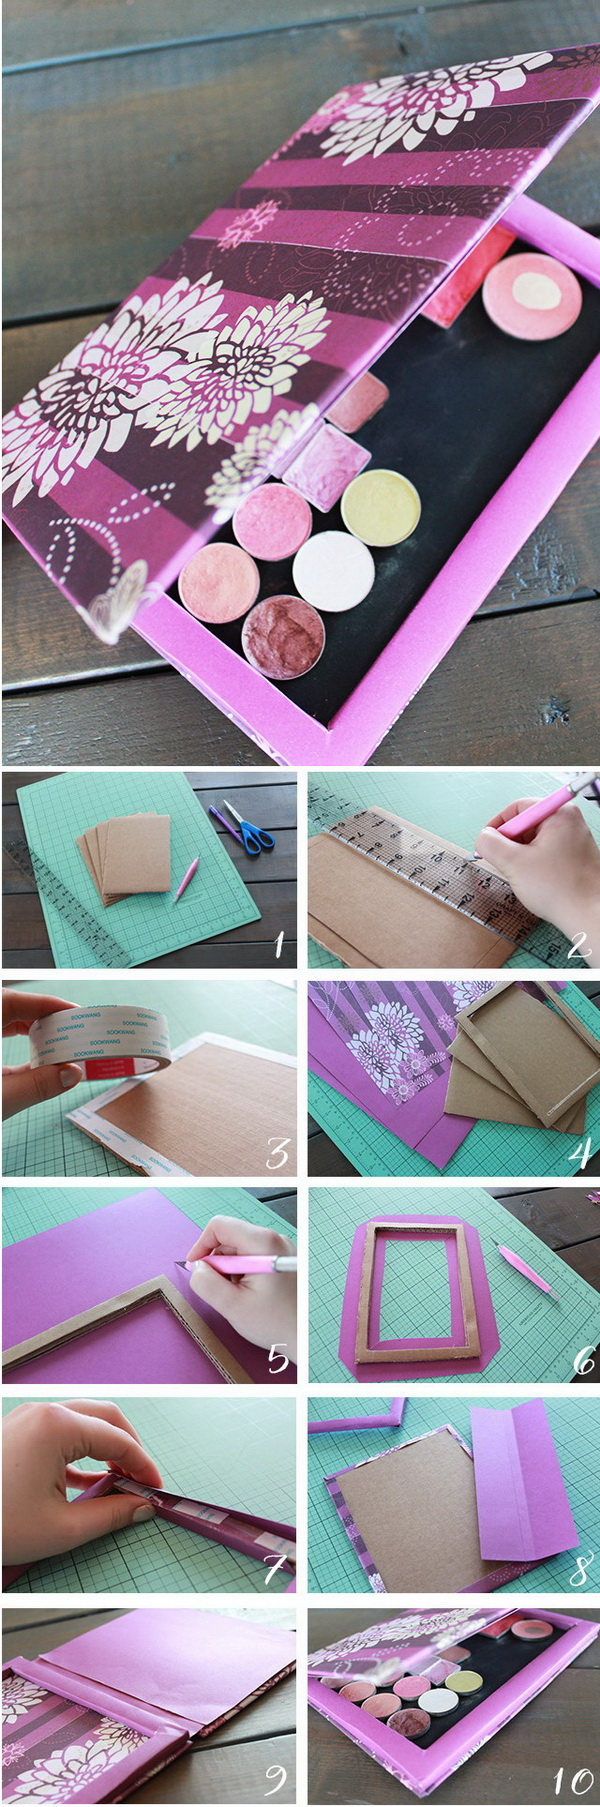 DIY Makeup Palette & 18 Amazing DIY Makeup Storage Ideas and Hacks - Listing More